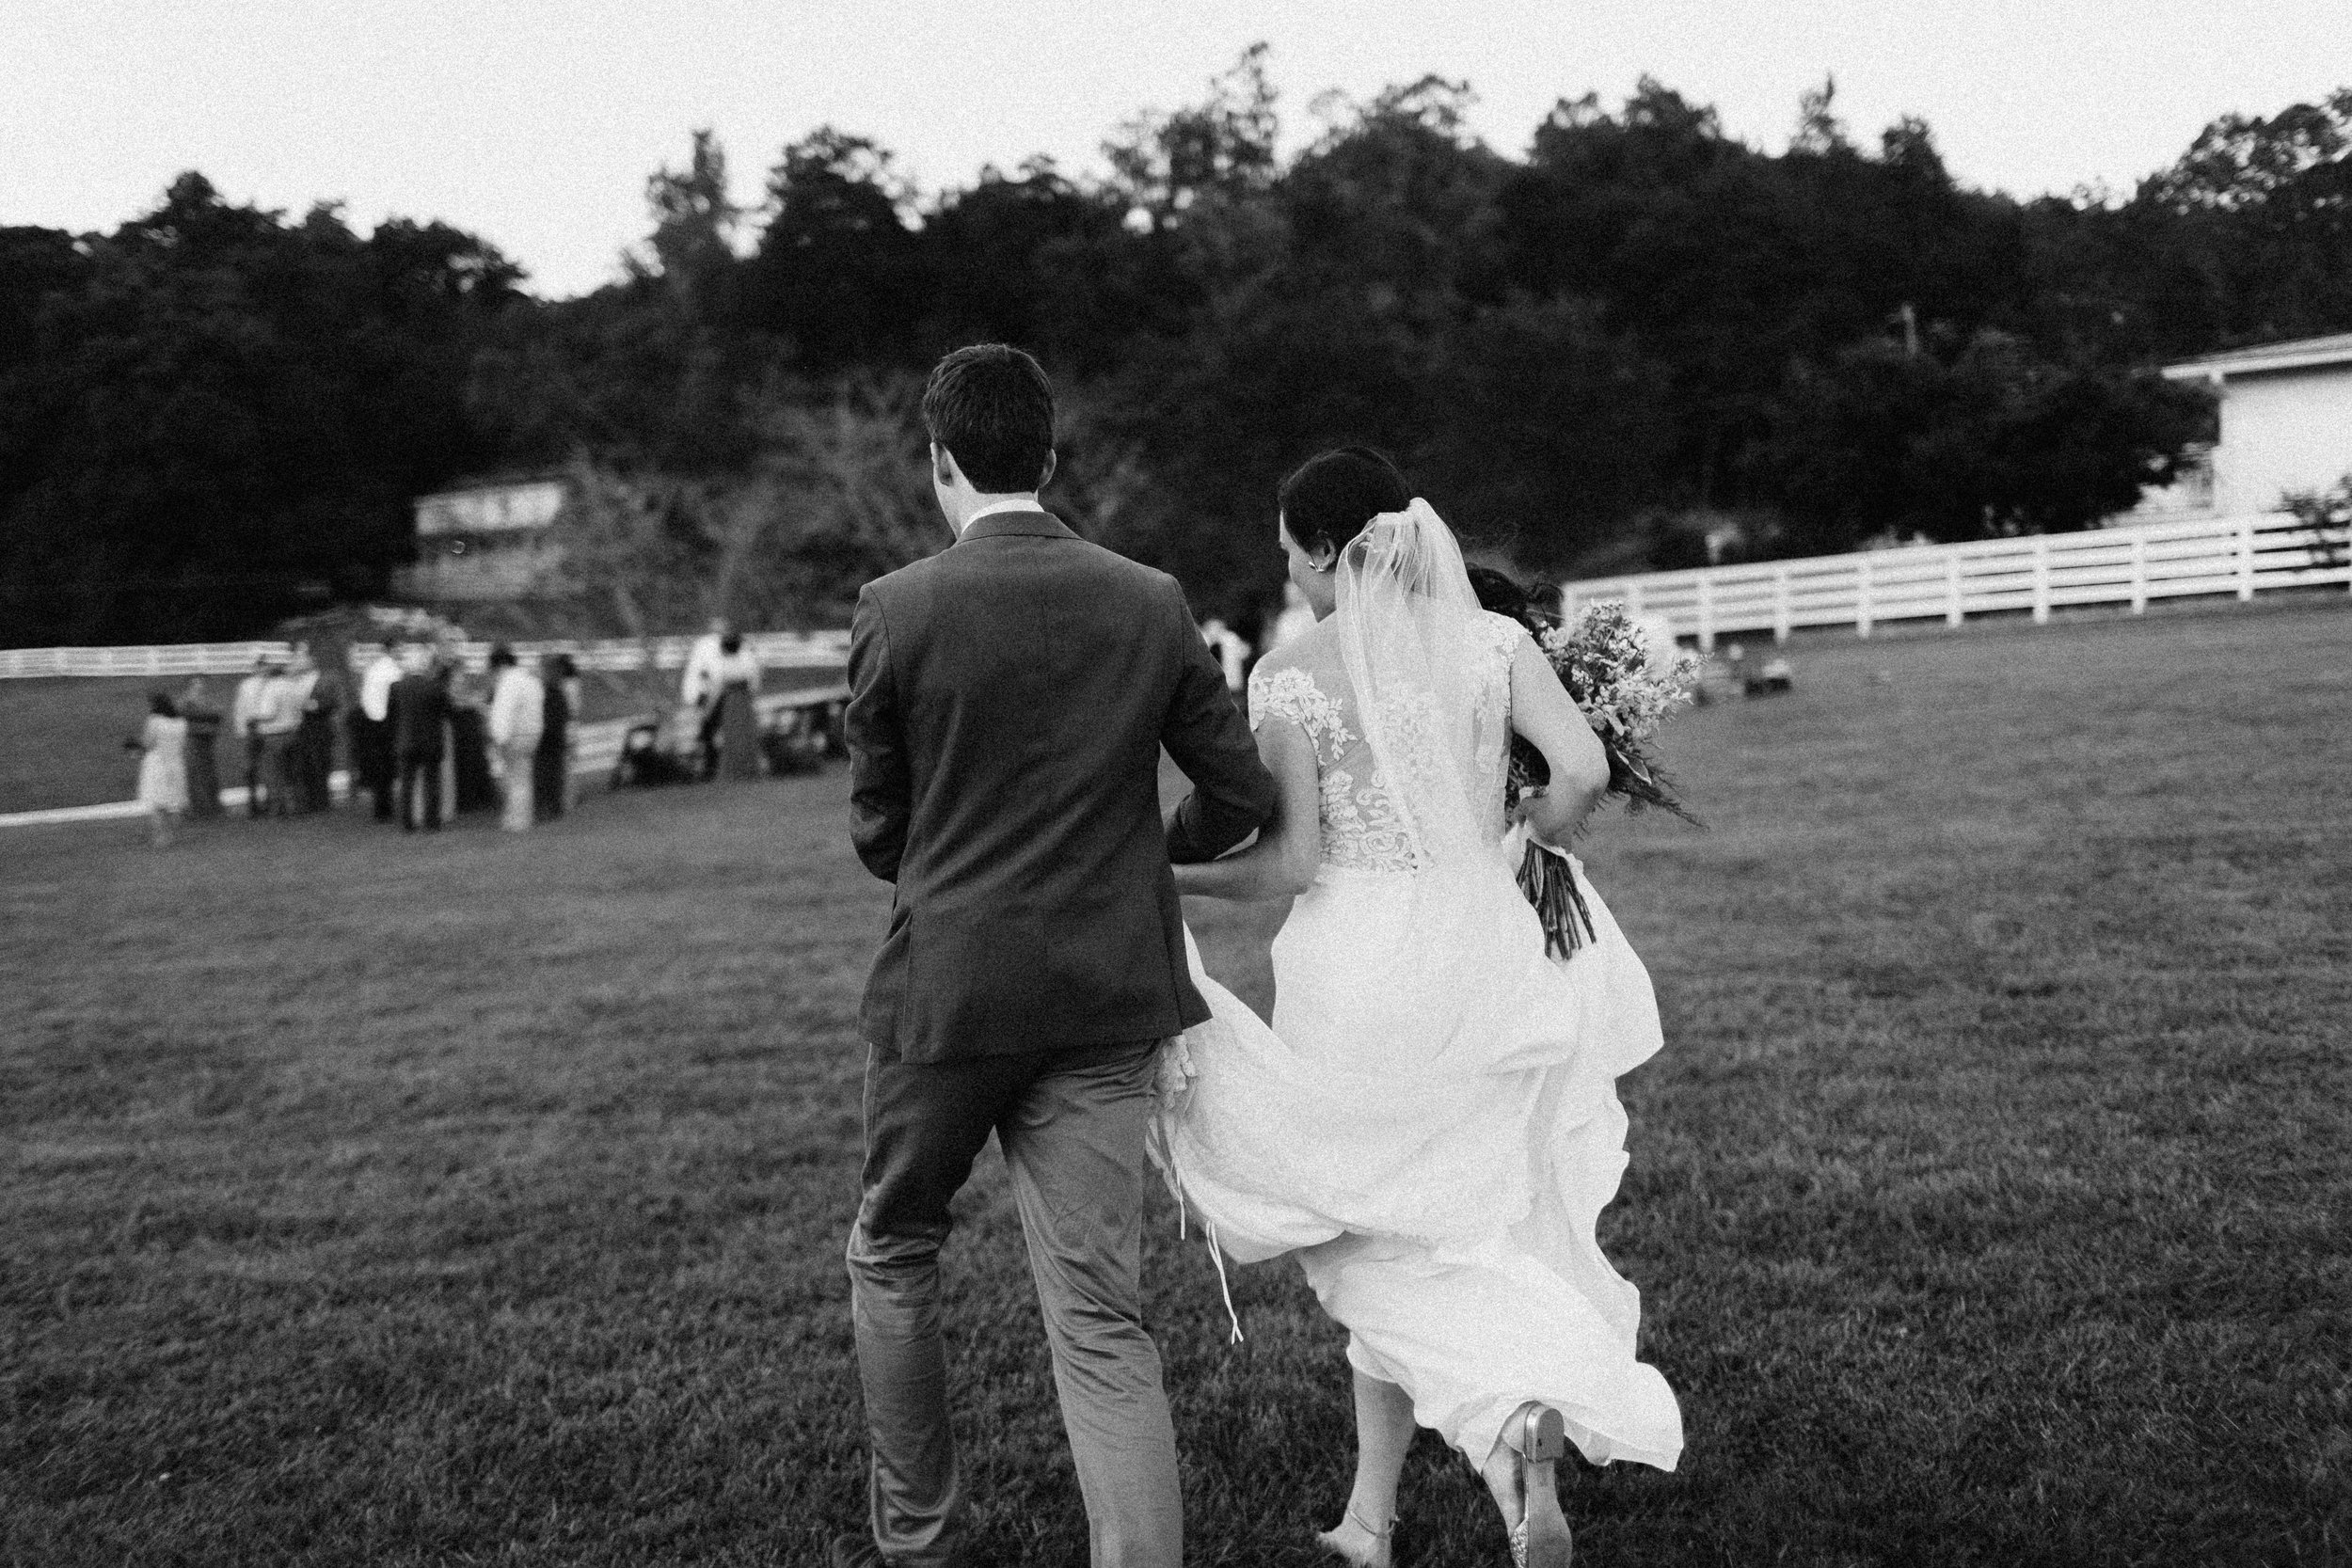 cleveland_georgia_mountain_laurel_farm_natural_classic_timeless_documentary_candid_wedding_emotional_photojournalism_river_west_1787.jpg